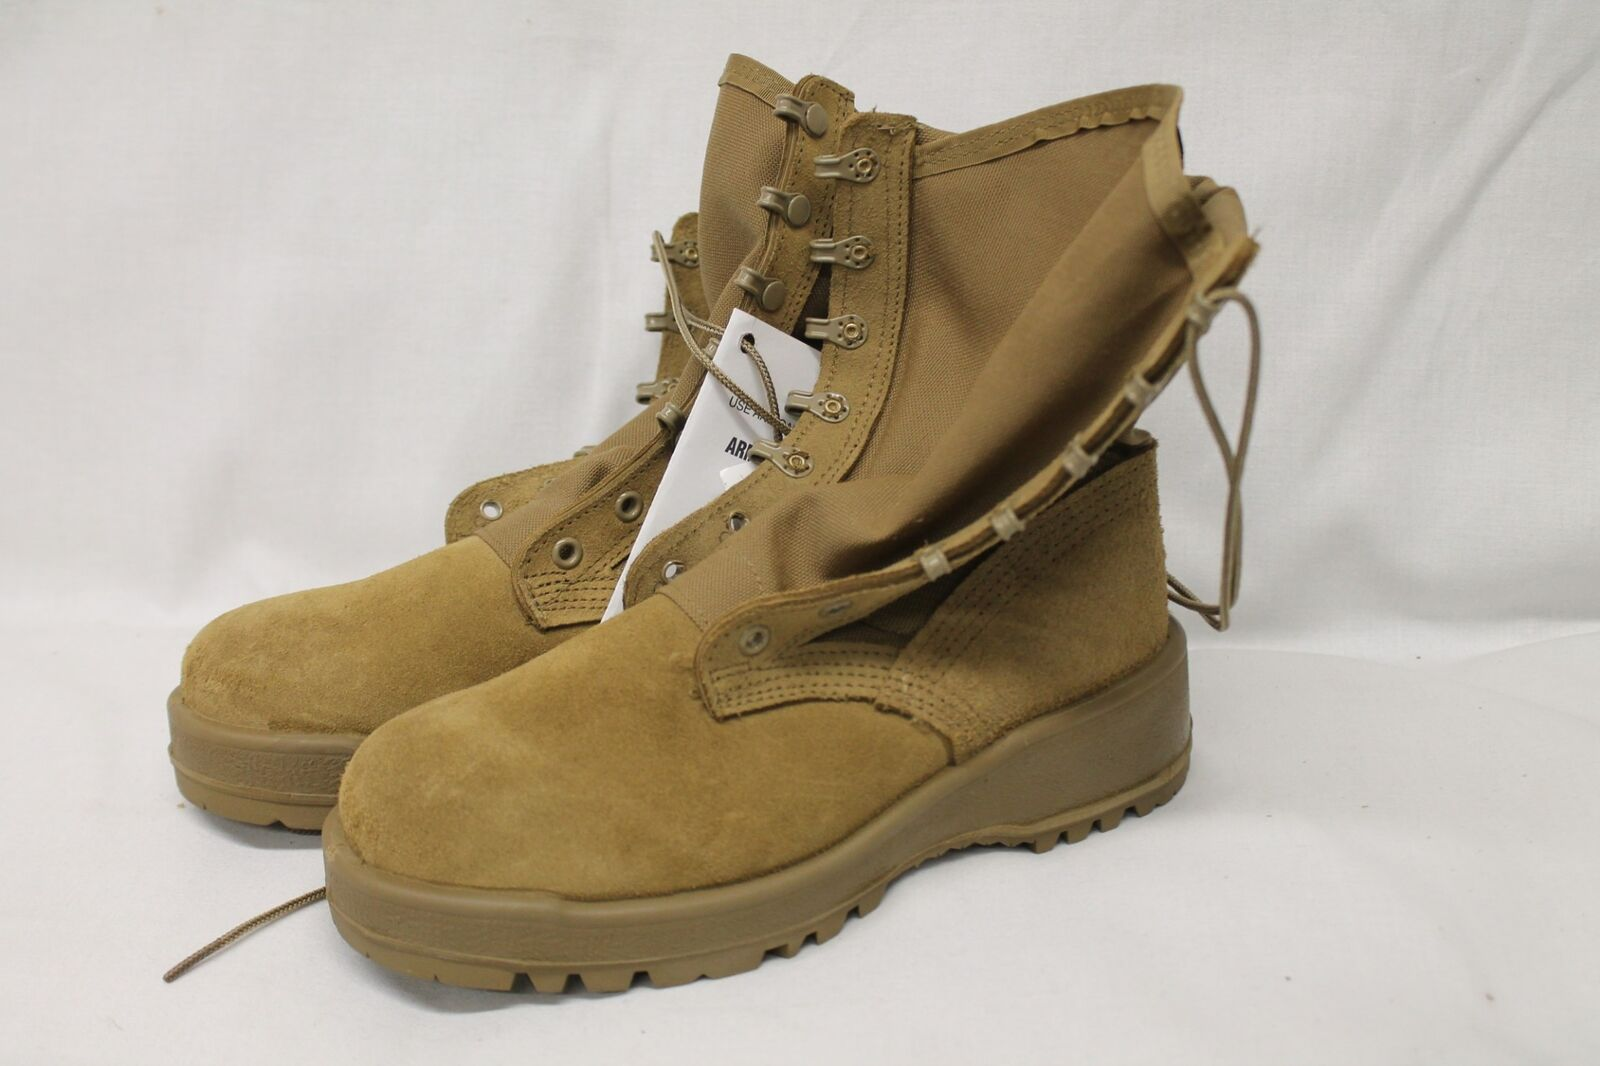 Altama Hot Weather Type II Combat Military shoes Boots With Tag Tan Size 5W